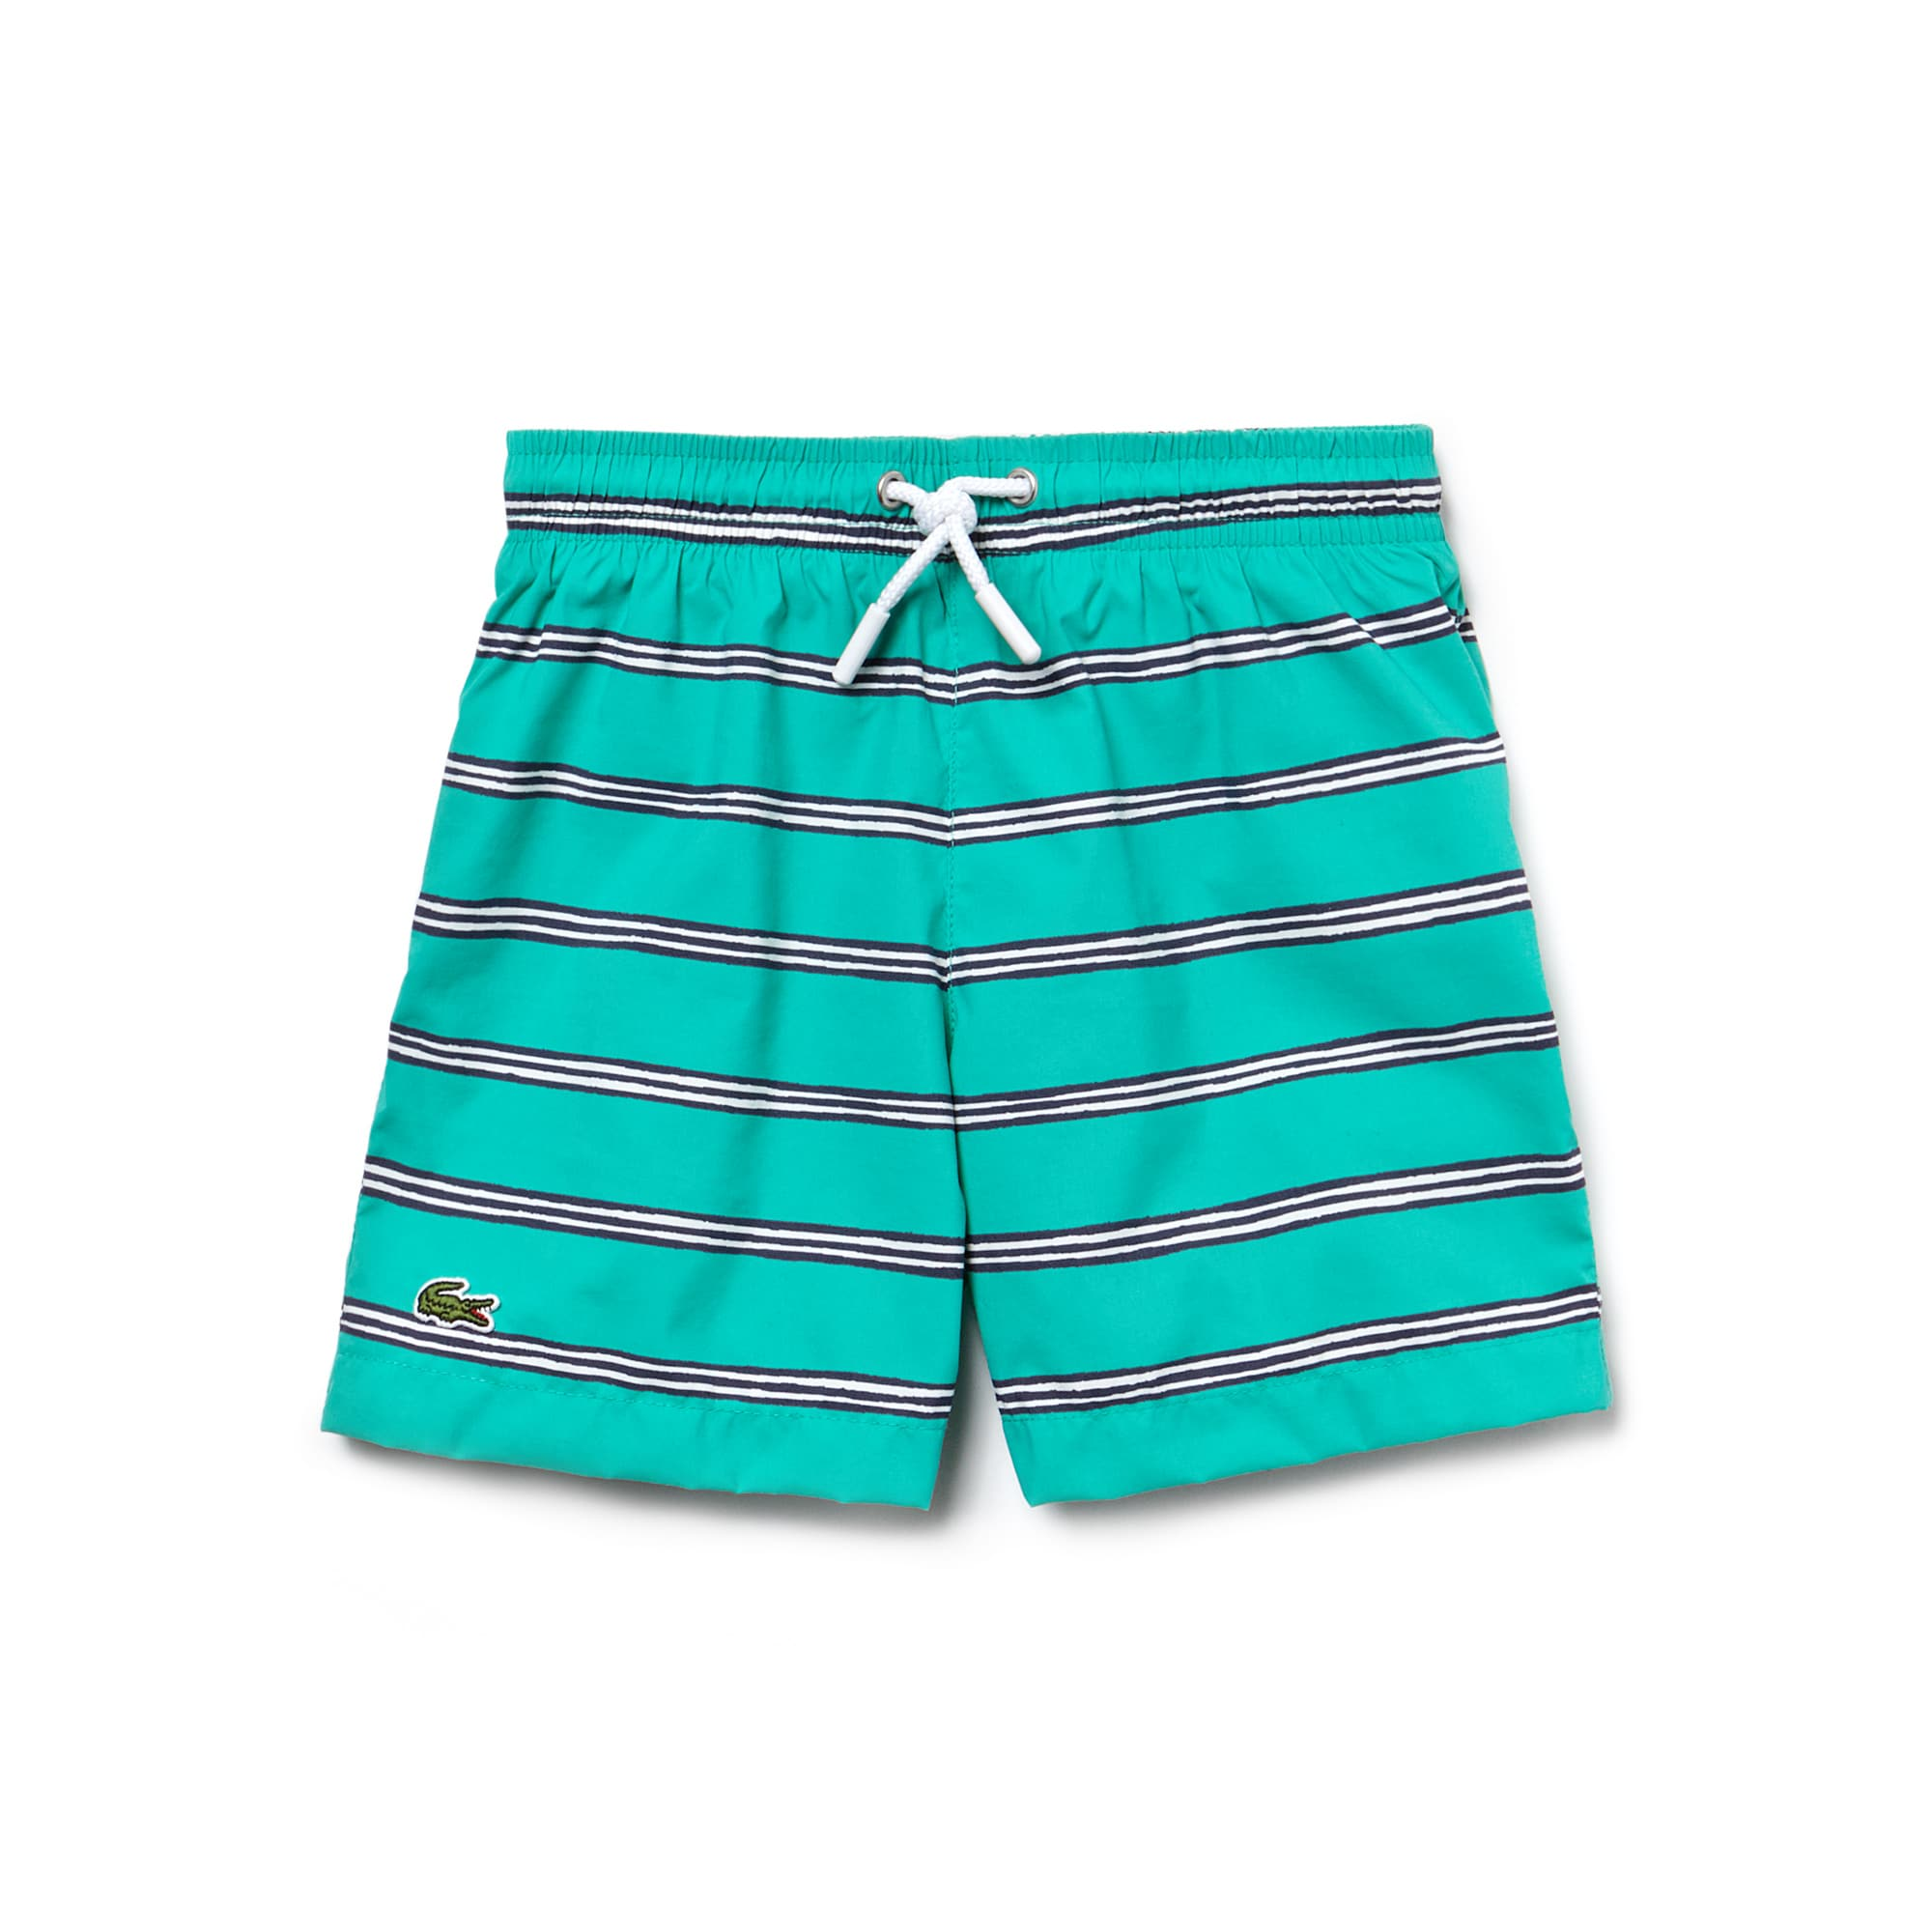 Boys' Striped Print Canvas Swimming Trunks